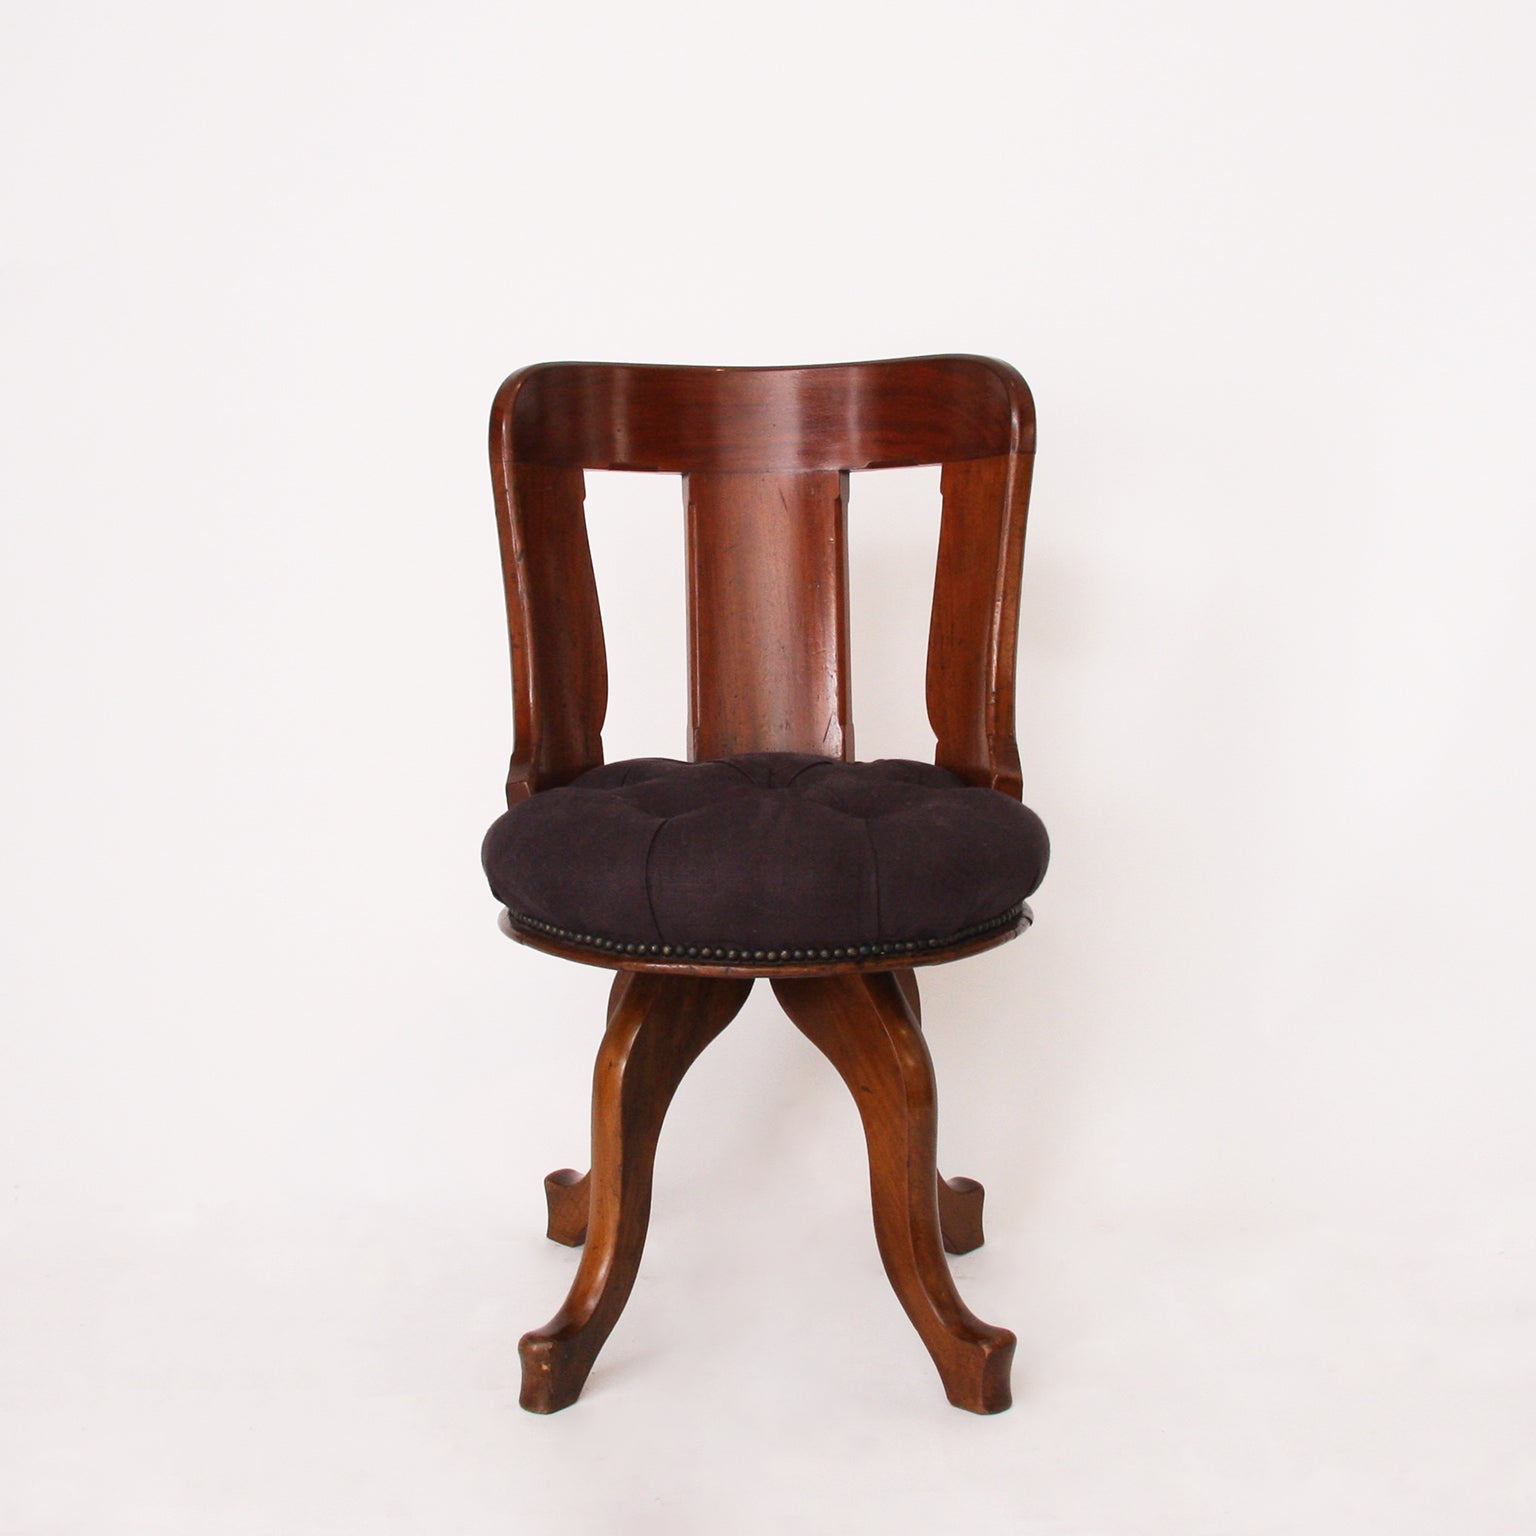 Linen Office Chair English 19th Century Mahogany Swivel Desk Chair With Upholstered Linen Seat